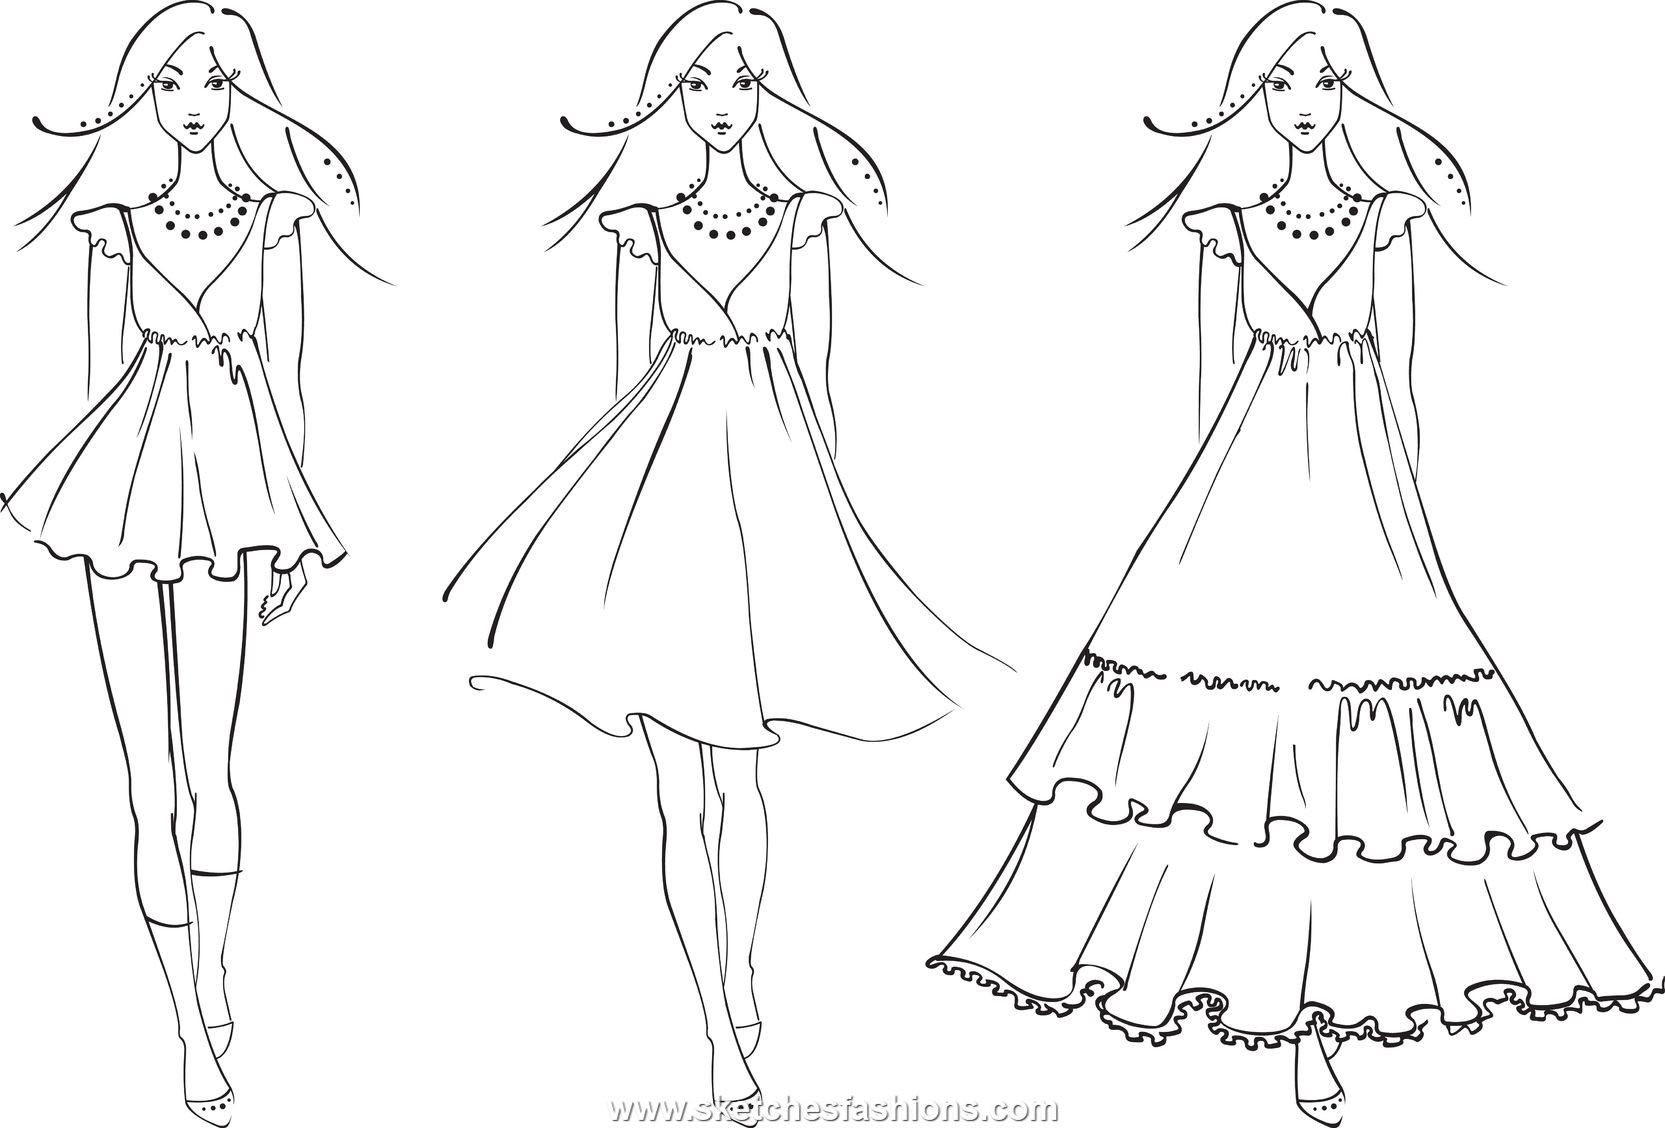 Fashion Design Sketches Of Dresses 2013 Viewing Gallery Fashion Design Sketches Fashion Design Coloring Book Colorful Fashion